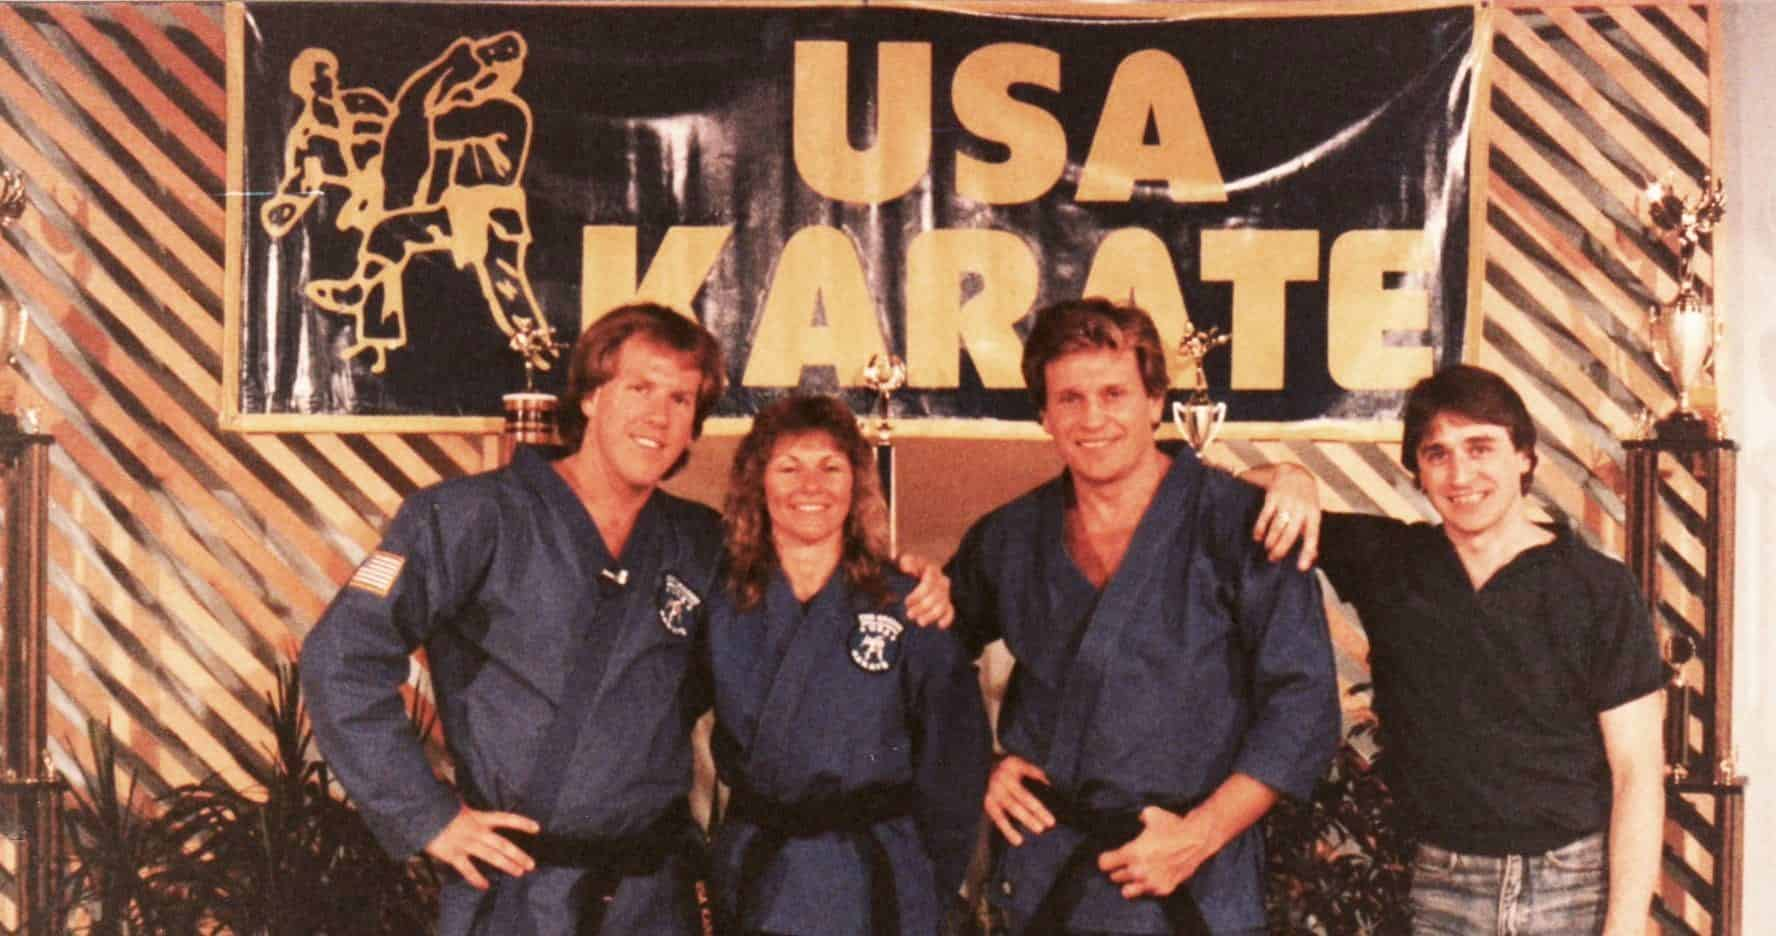 John Corcoran on Martial Arts Instructor Certification